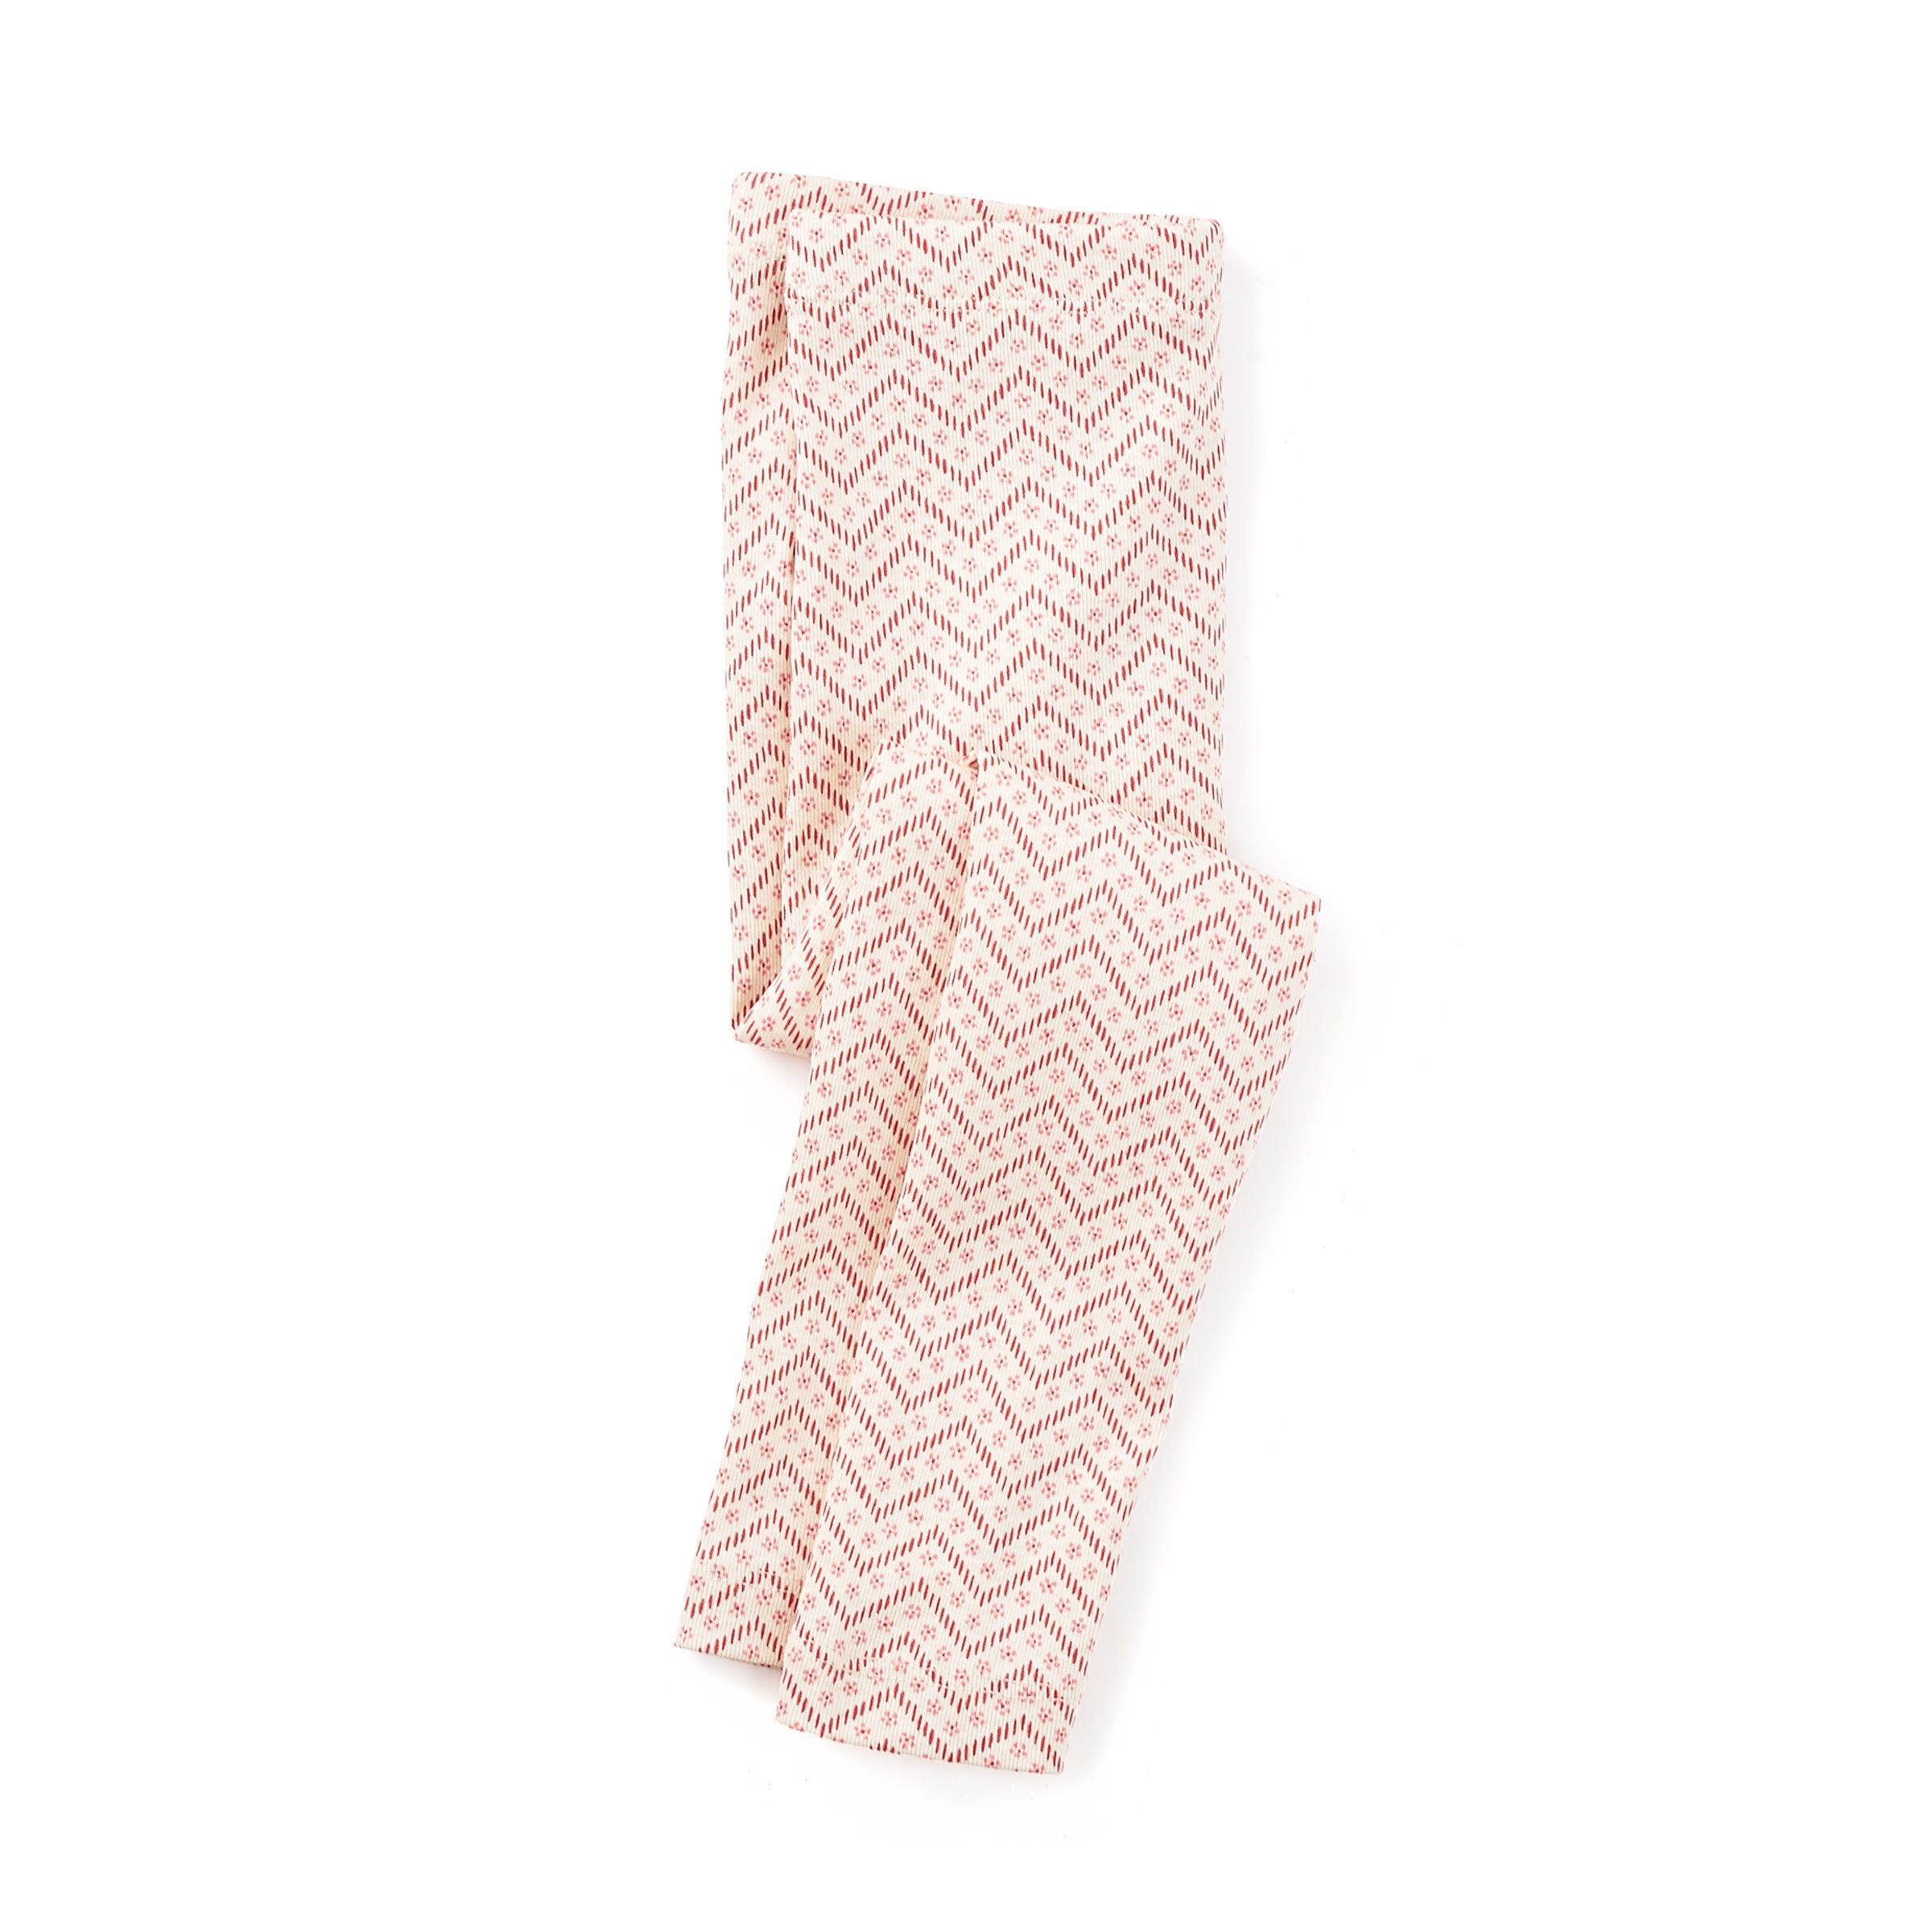 She'll love these leggings for their fashionably fun zig zag pattern and oh-so-stretchy style.